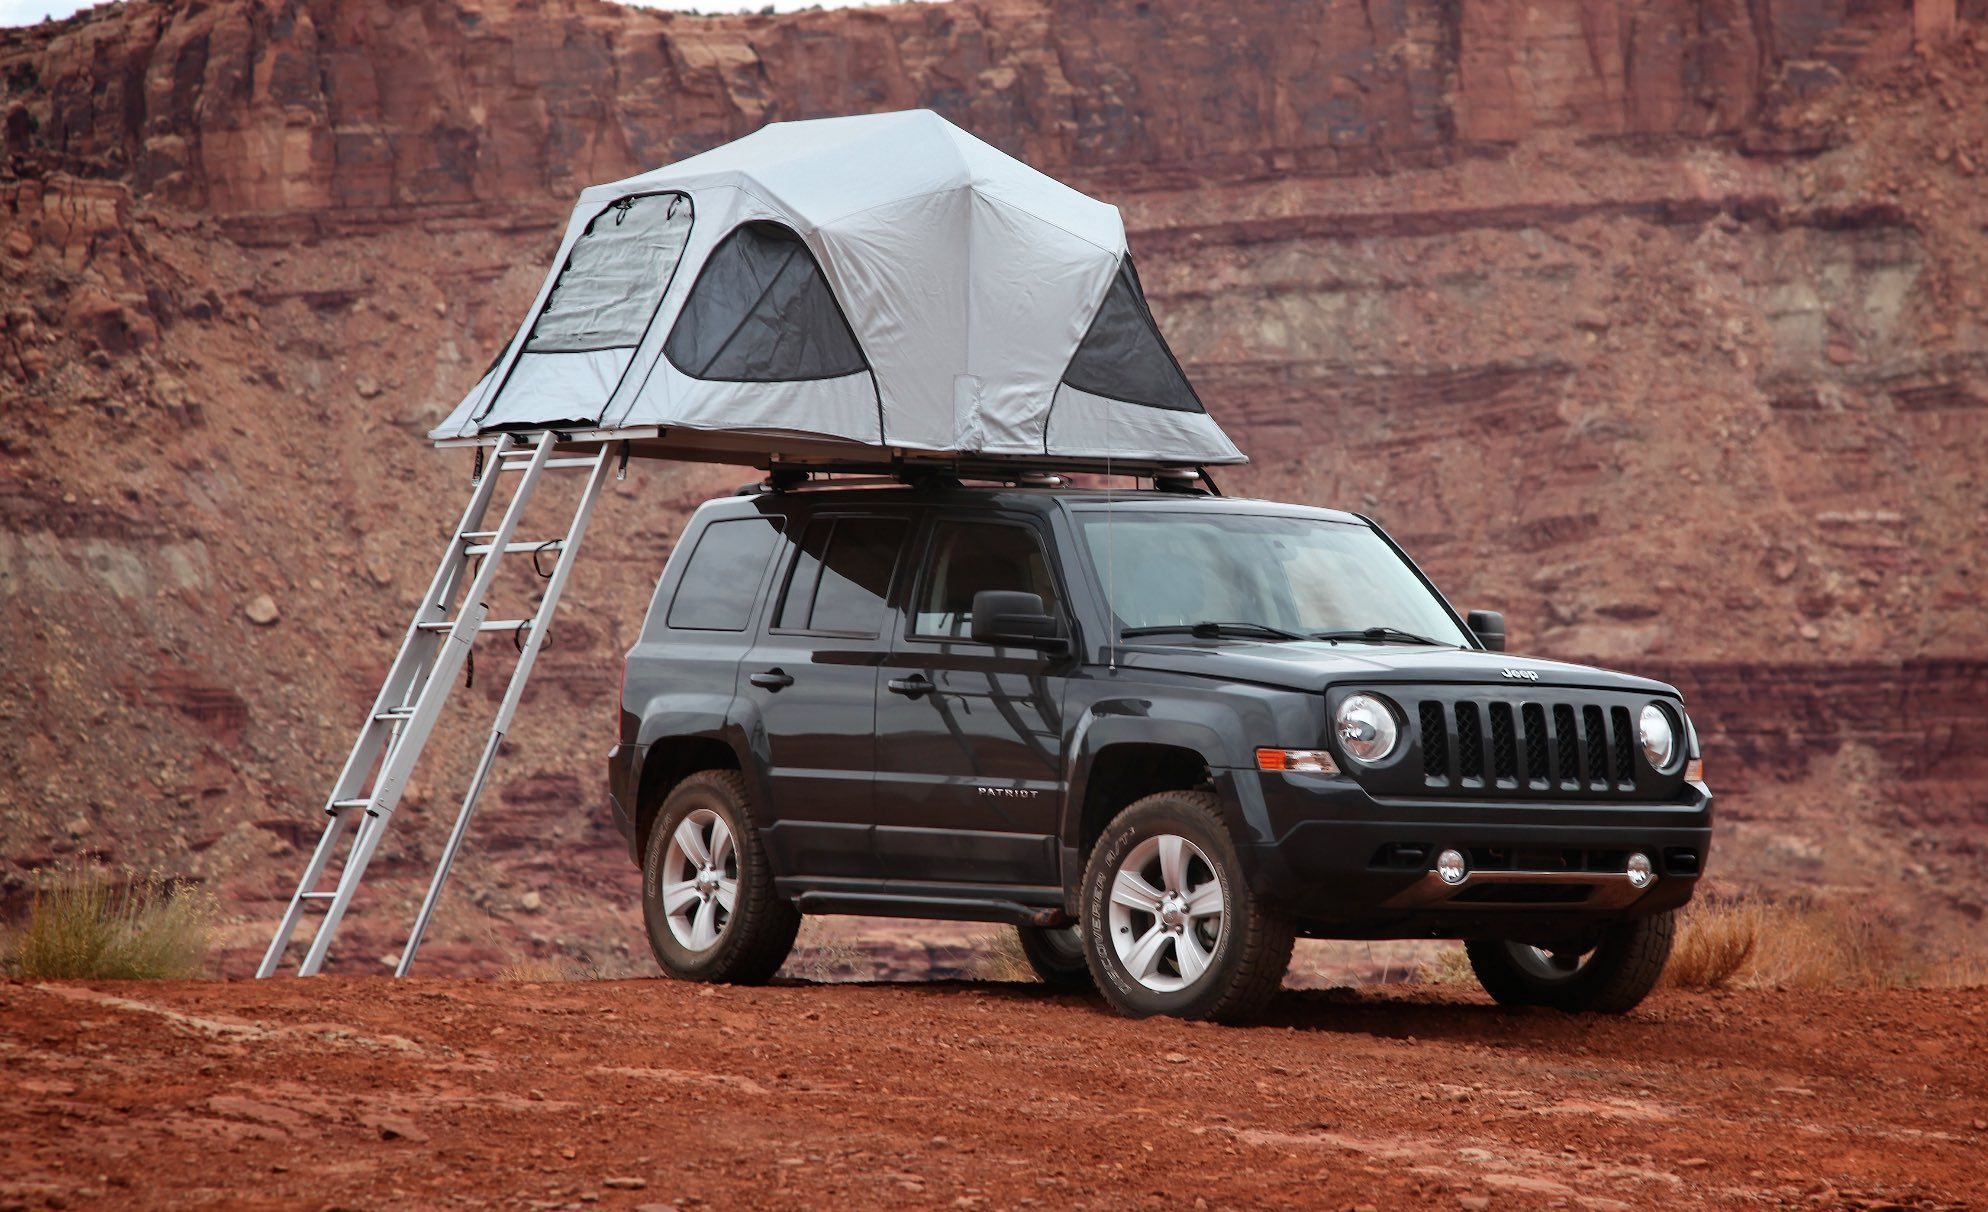 Best Top Ten Truck Bed Tent Reviews Roof Top Tent Jeep Patriot